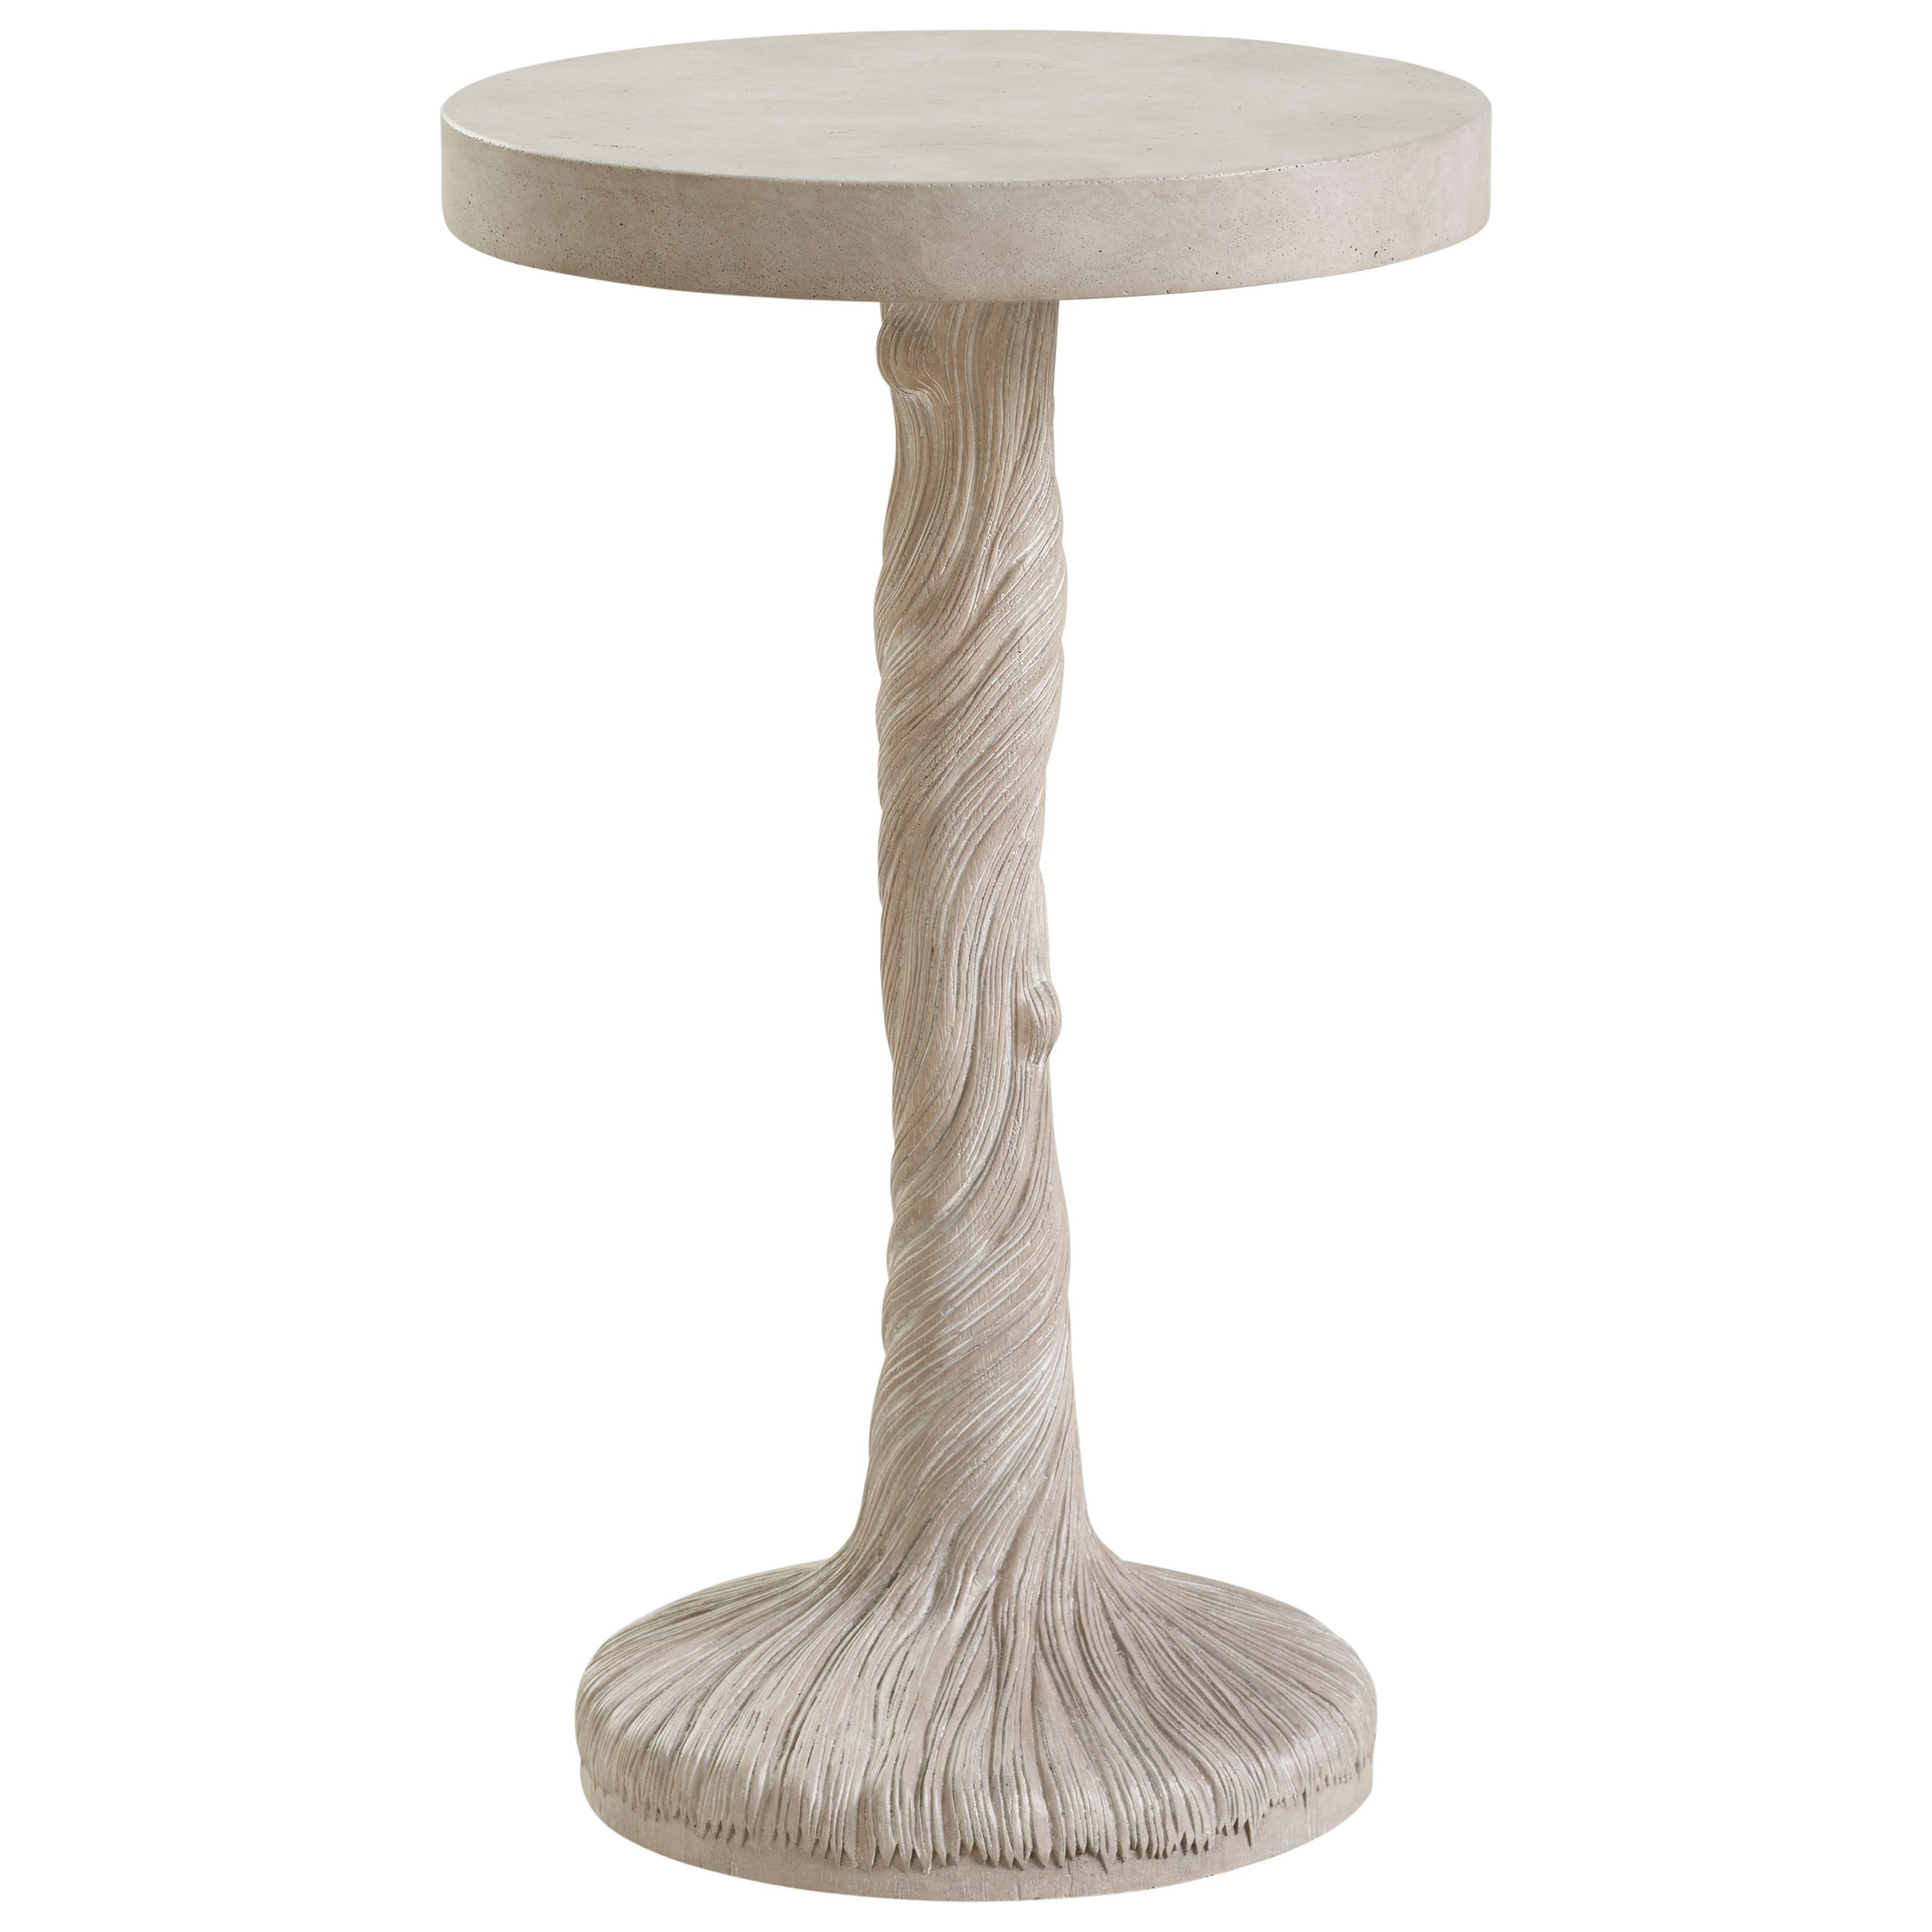 Malibu Saddle Peak Round Accent Table by Barclay Butera at Baer's Furniture